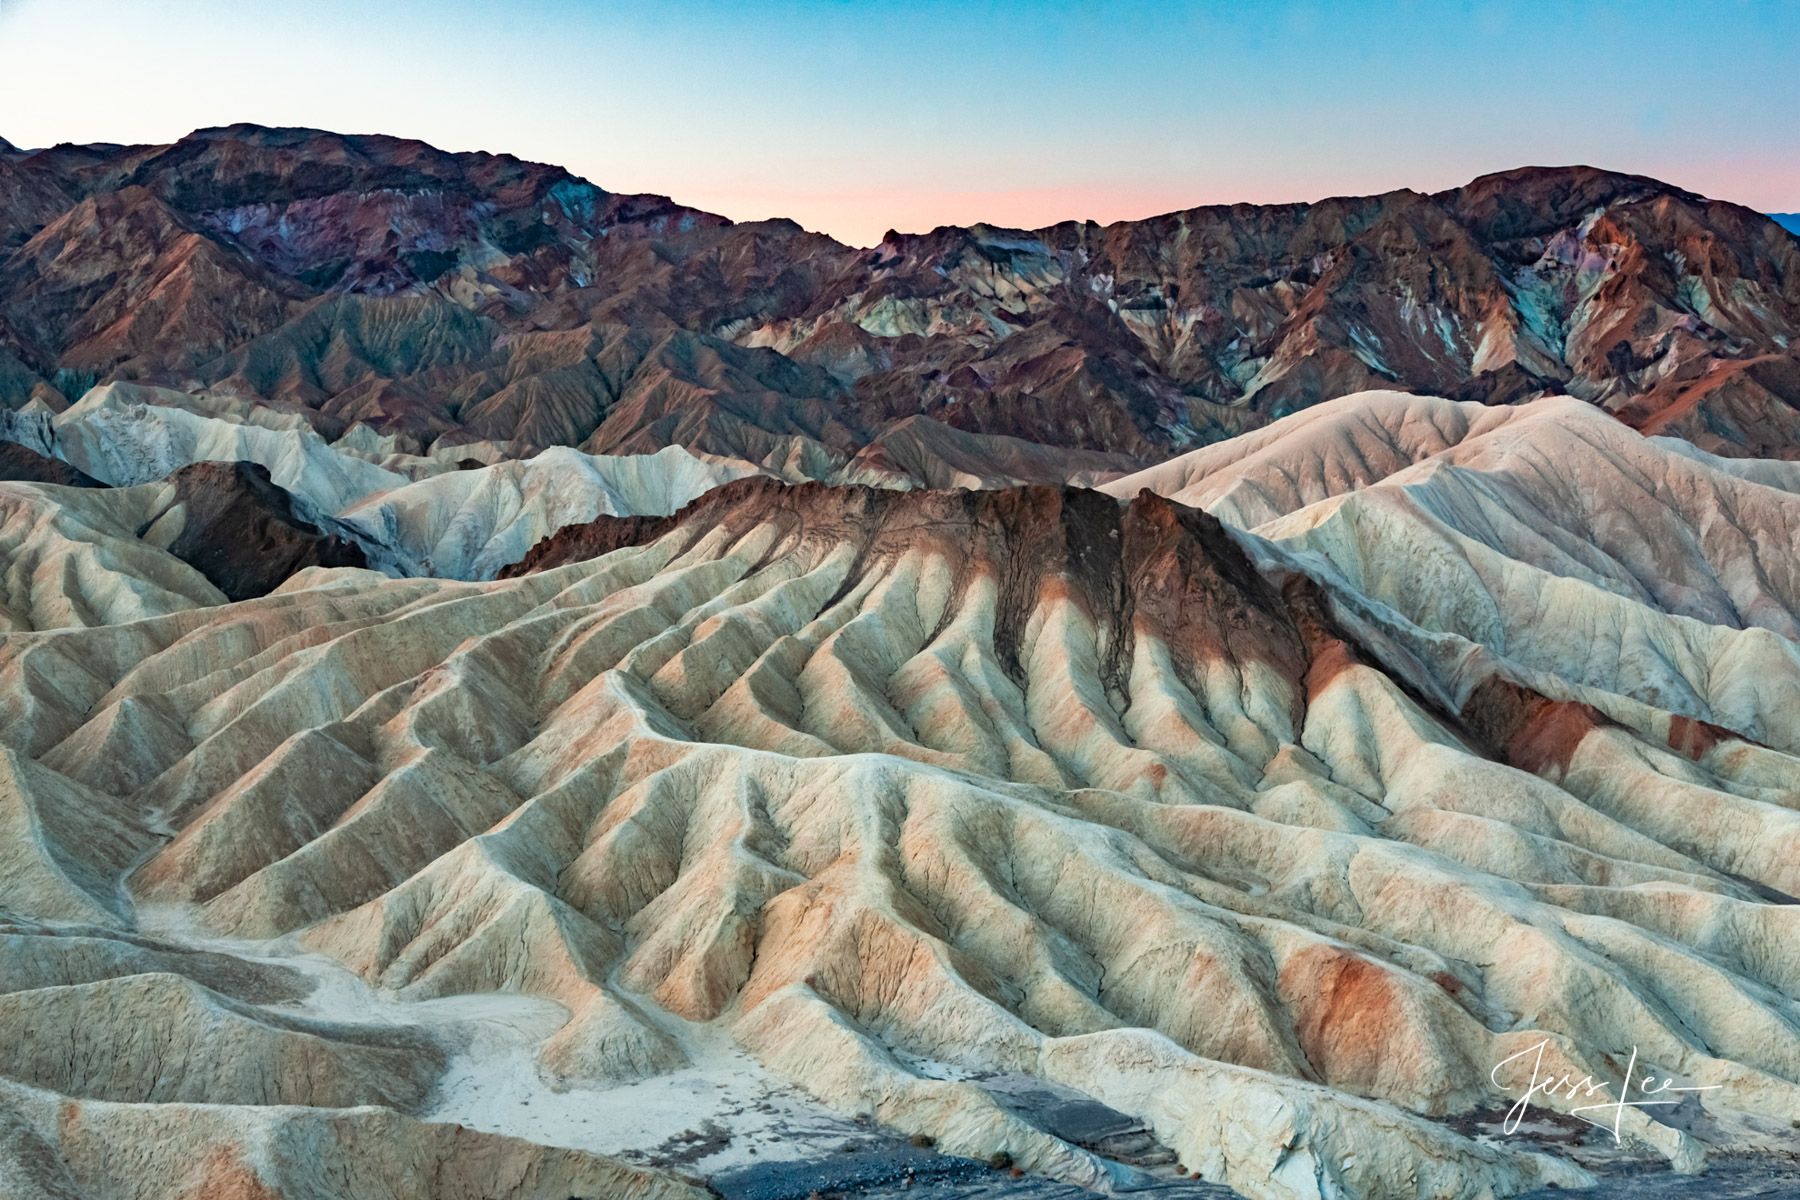 Limited Edition of 50 Exclusive high-resolution Museum Quality Fine Art Prints of Death Valley California from the Desert and...